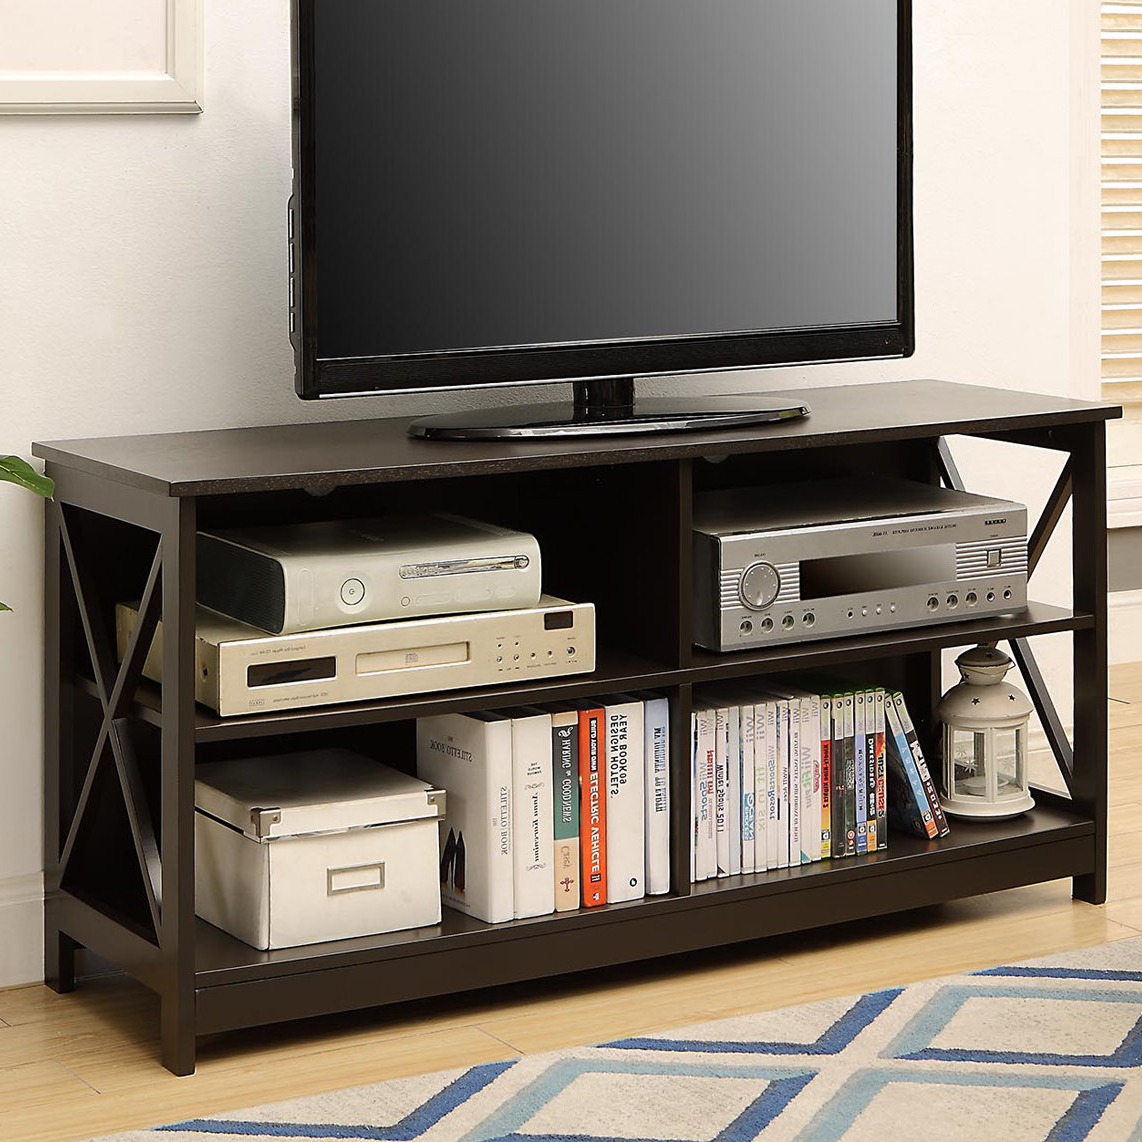 Low (up To 23 Inches) Tv Stands (Gallery 3 of 20)